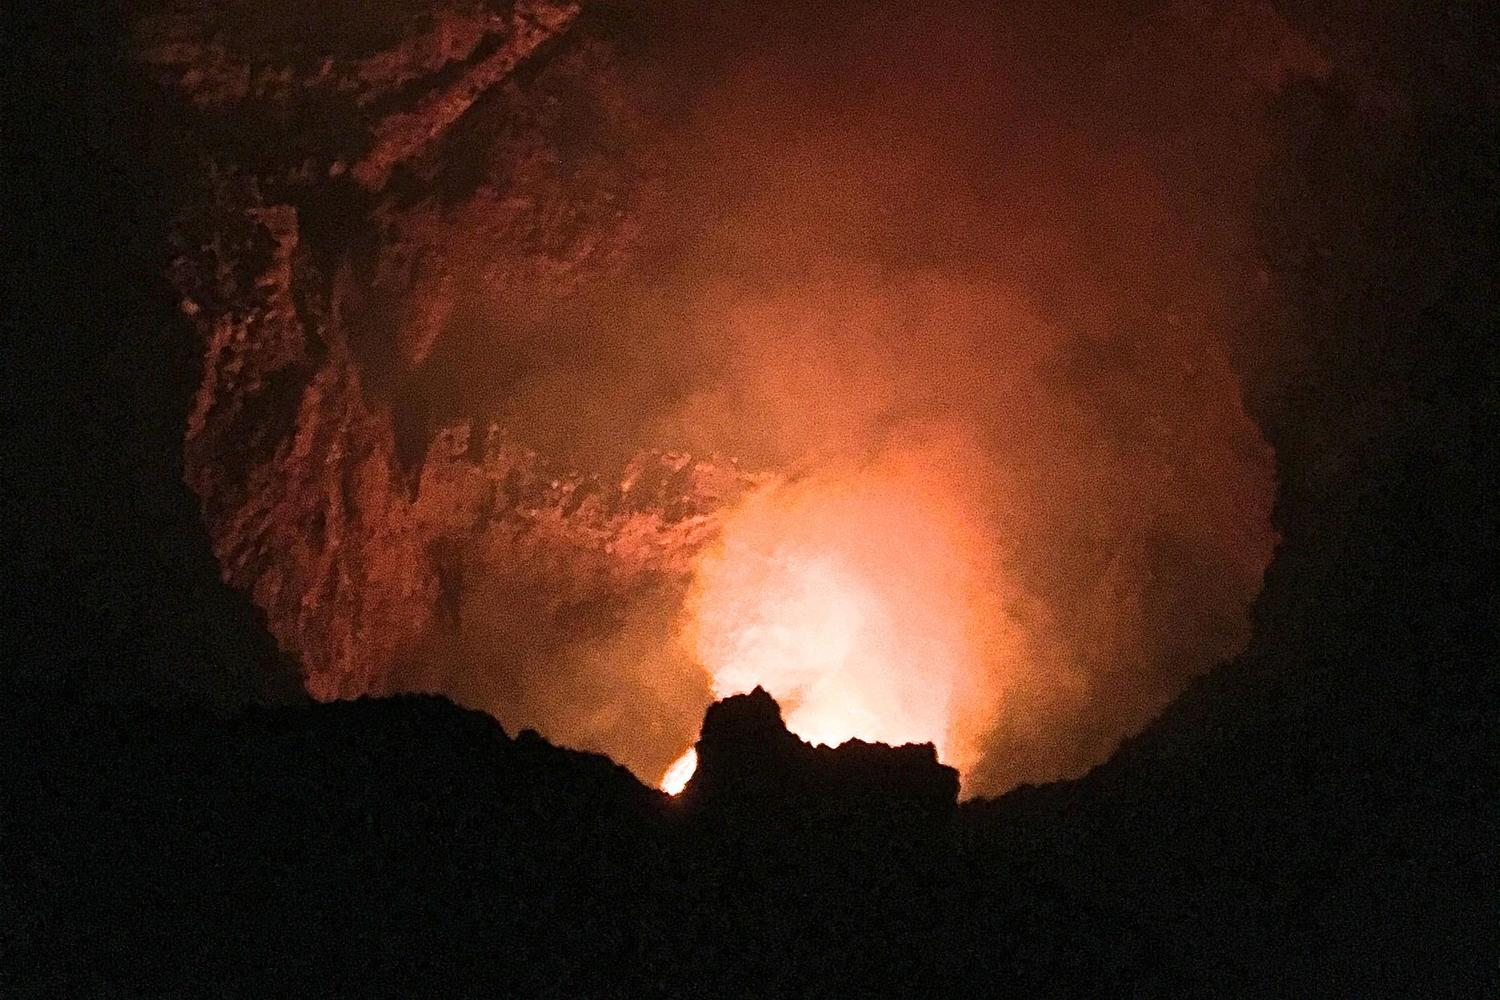 Fiery lava glowing in the Masaya crater